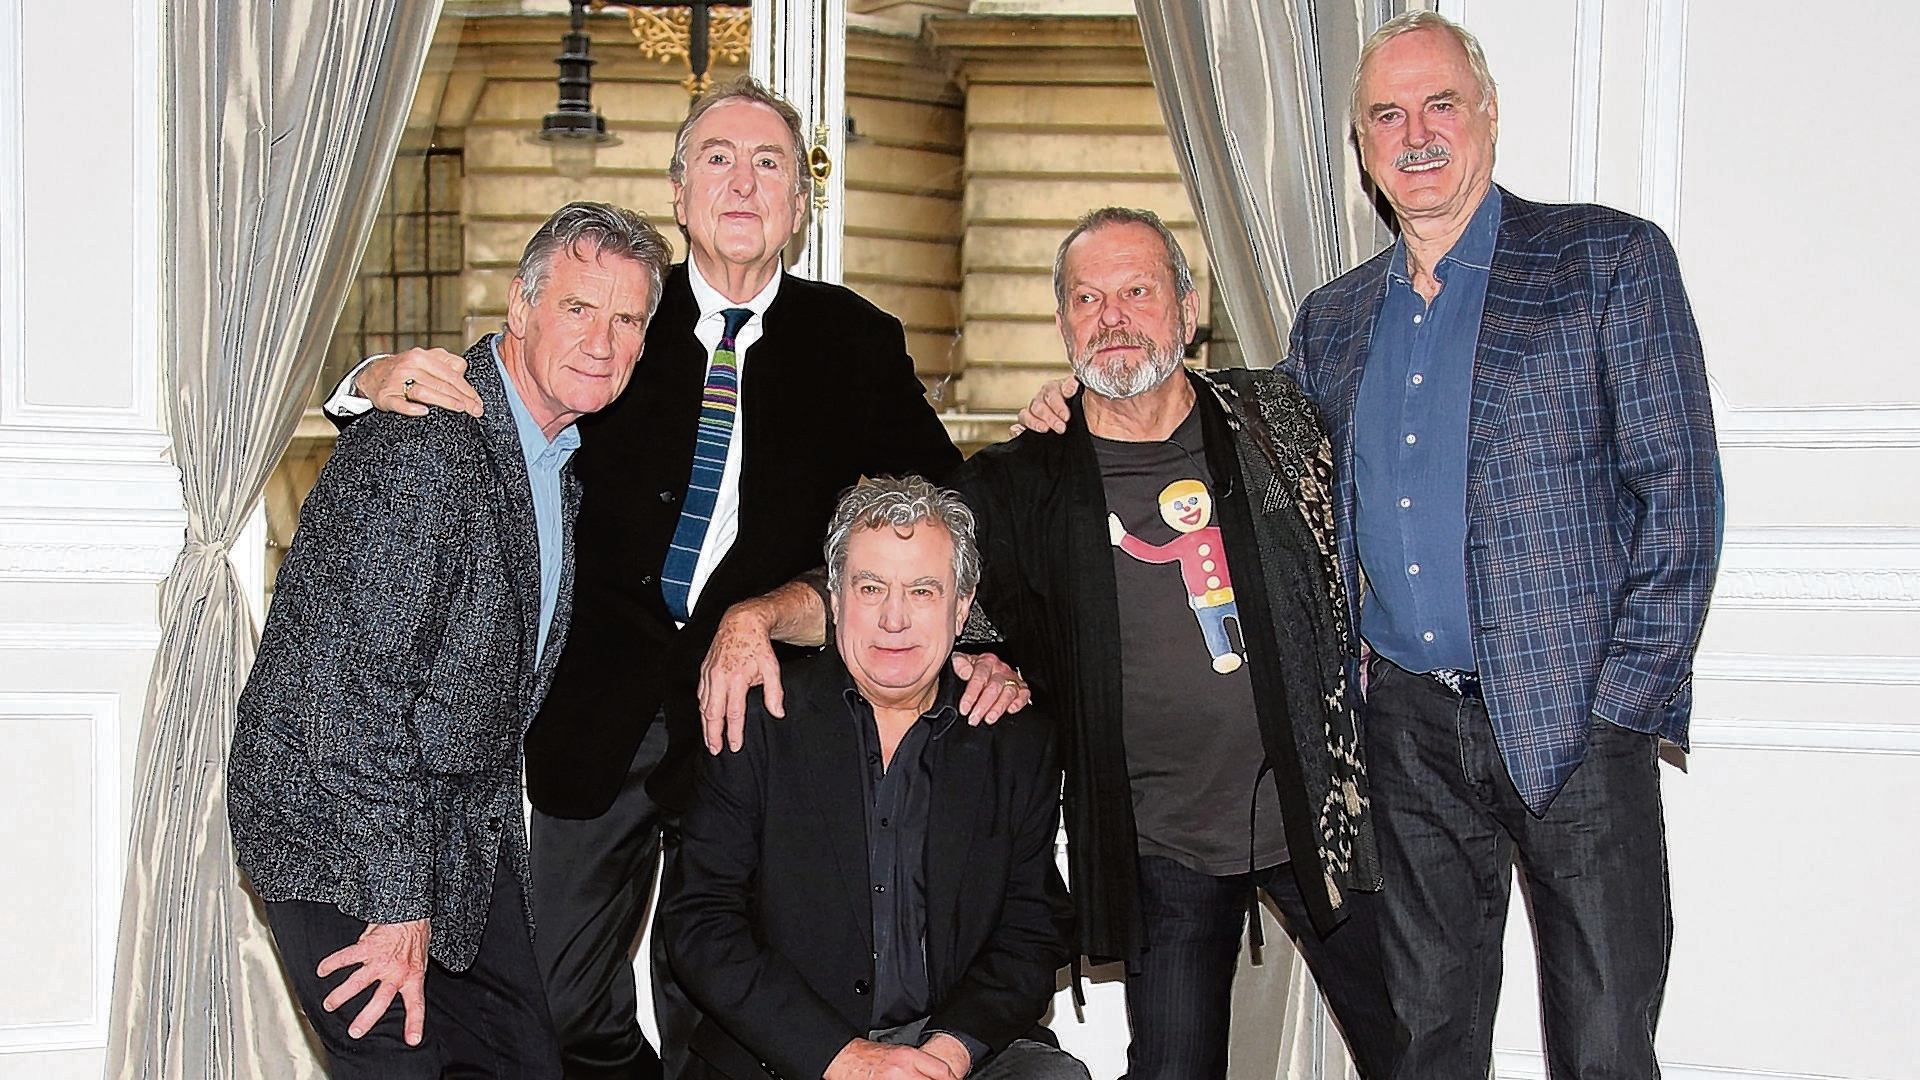 The Monty Python team: Left to right Michael Palin, Eric Idle, Terry Jones, Terry Gilliam and John Cleese